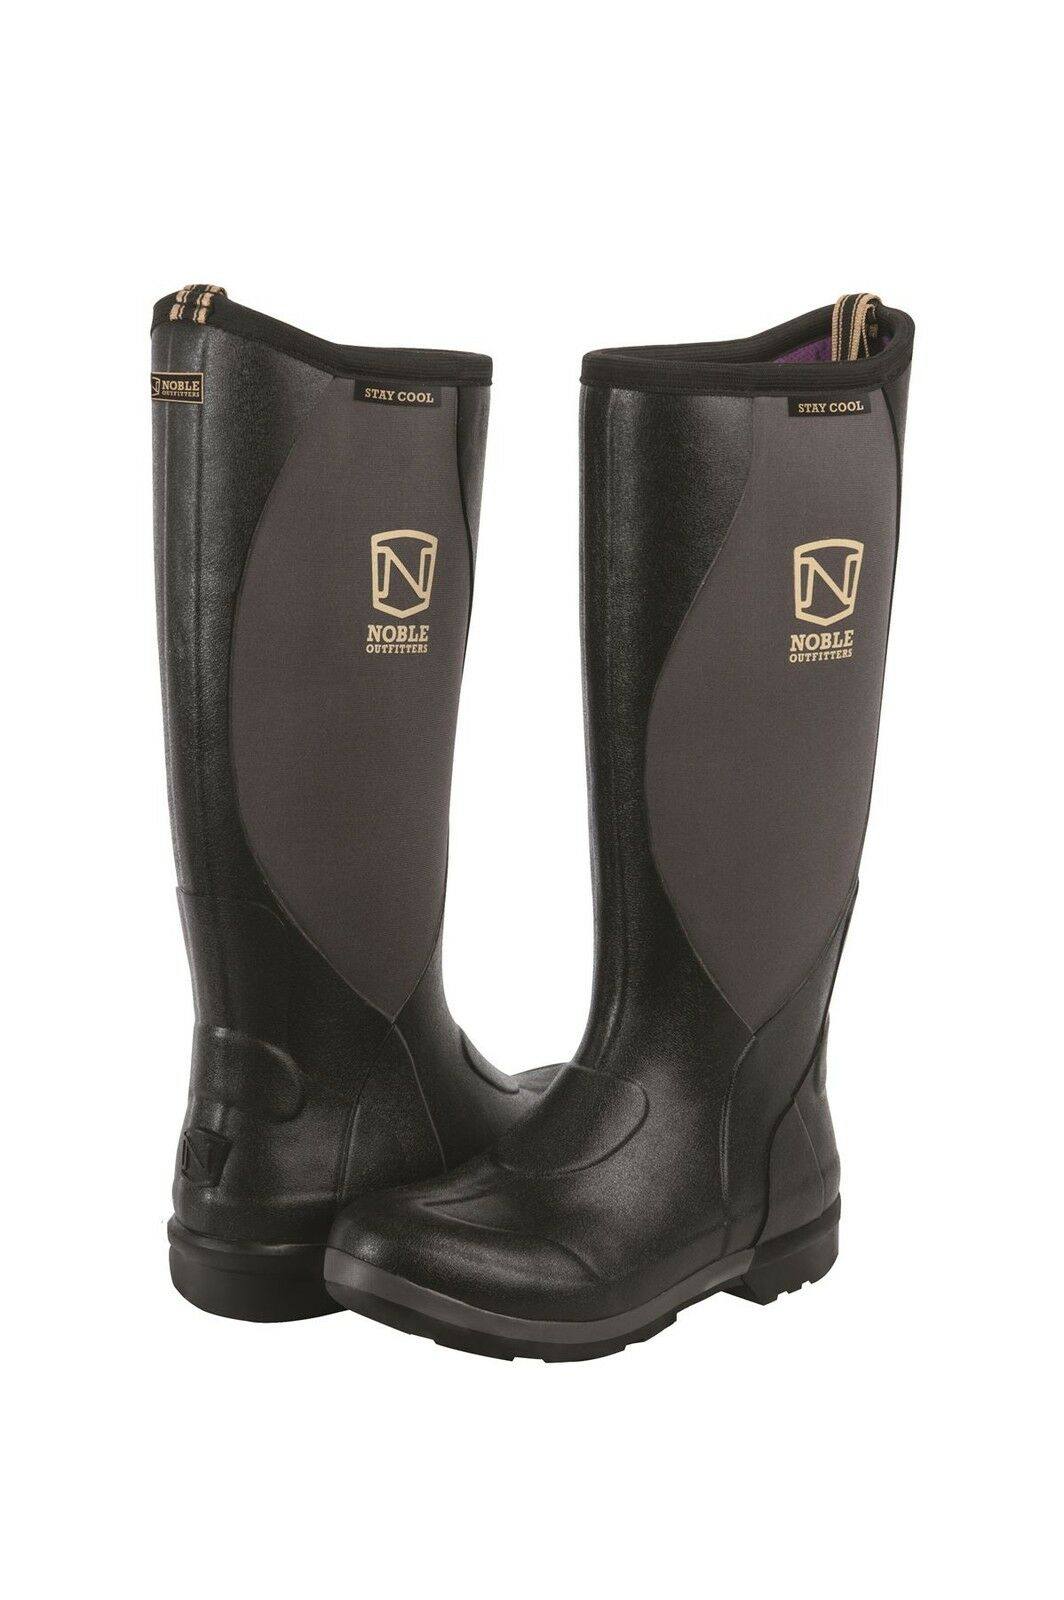 Noble Outfitters Women's Muds Stay Cool  Waterproof High Boots BAT-12365P  up to 42% off